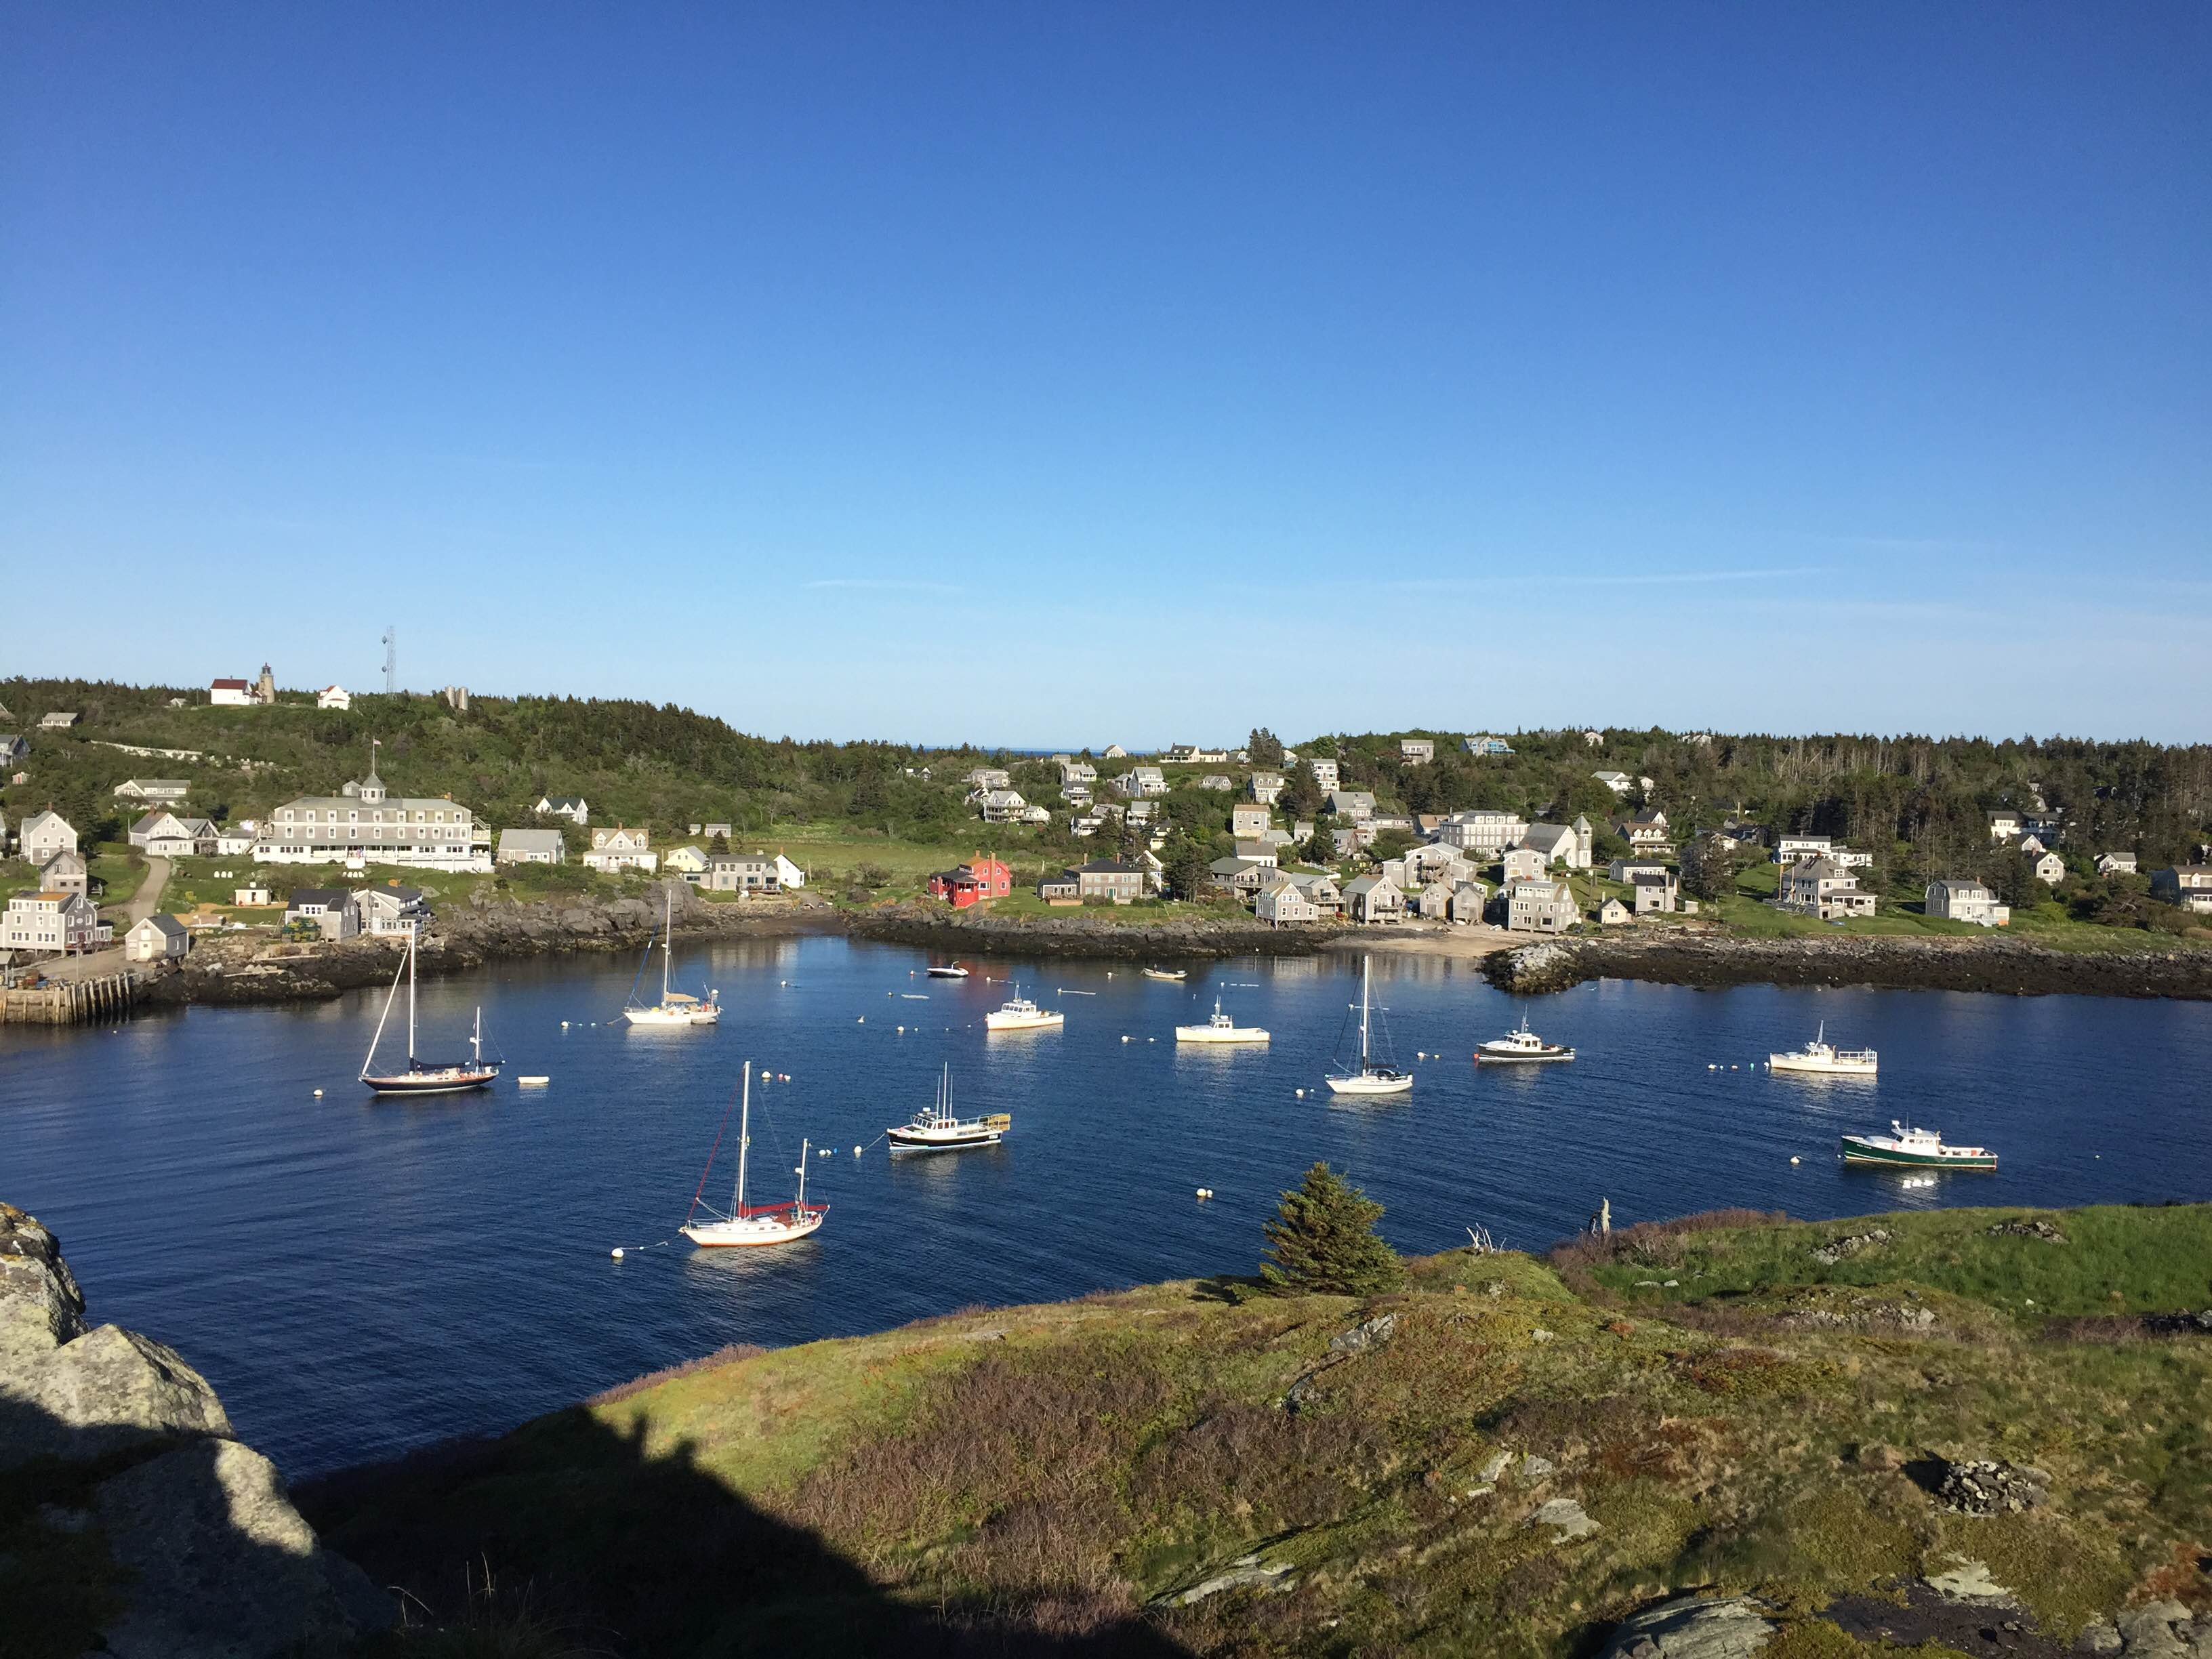 There's room for more lobstermen on Monhegan Island